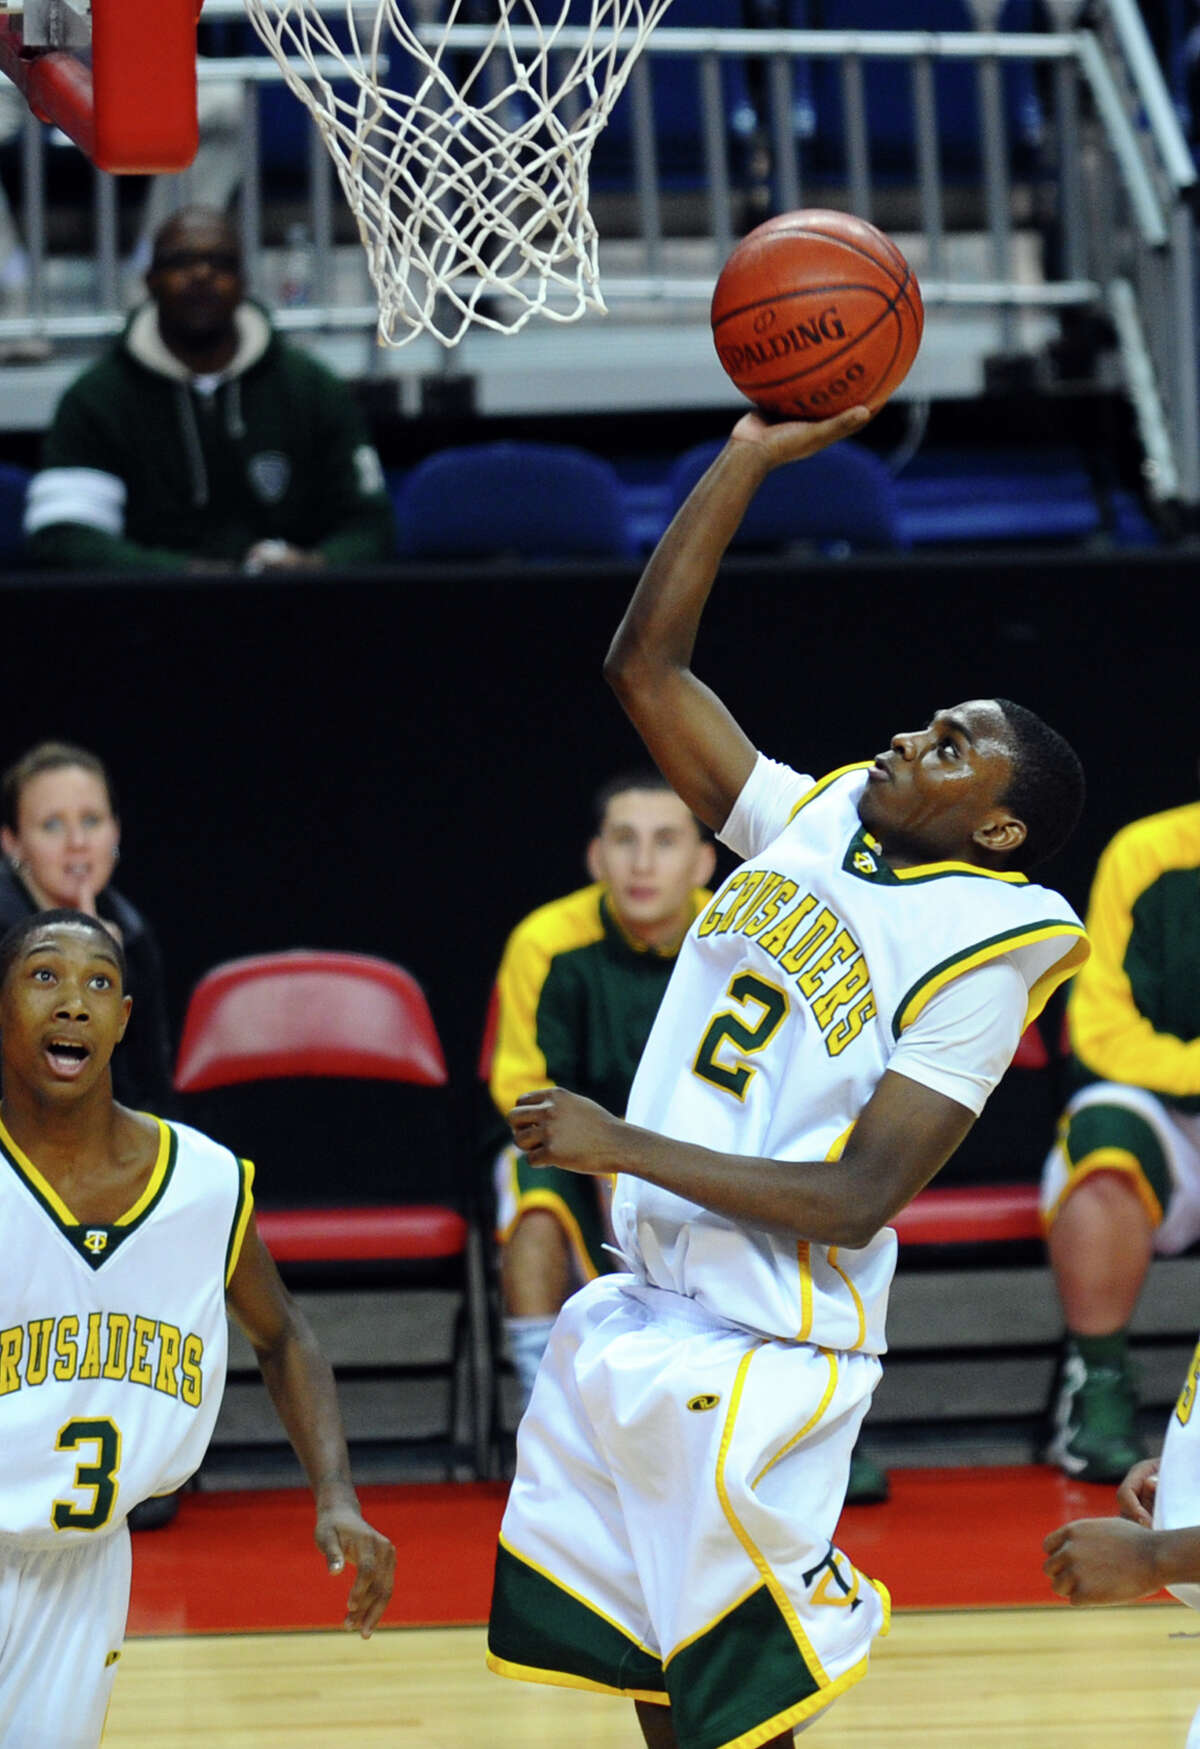 Trinity Catholic's #2 Schadrac Casimir lays up for two, during Northeast Christmas Classic basketball tournament action against Monsignor Farrell at Webster bank Arena in Bridgeport, Conn. on Frday December 28, 2012. During this game Casimir celebrated scoring his 1000th point.